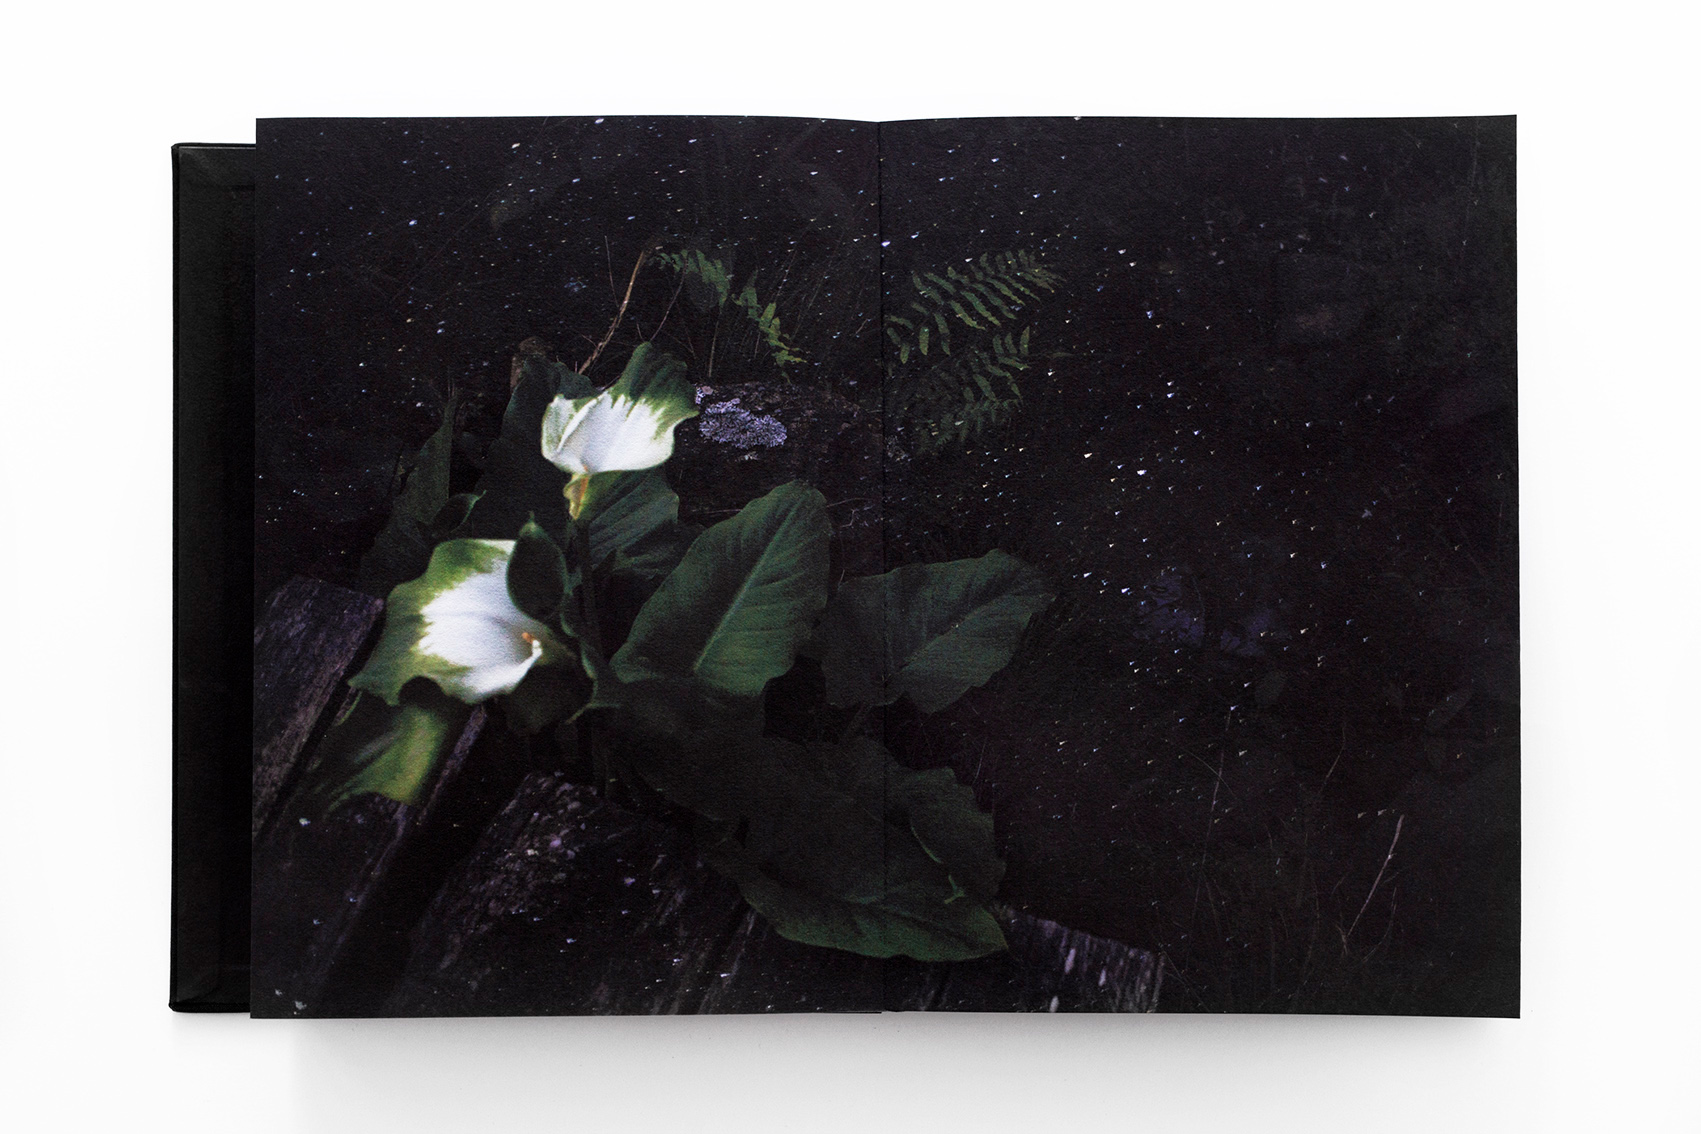 A book open to a photograph of flowers.